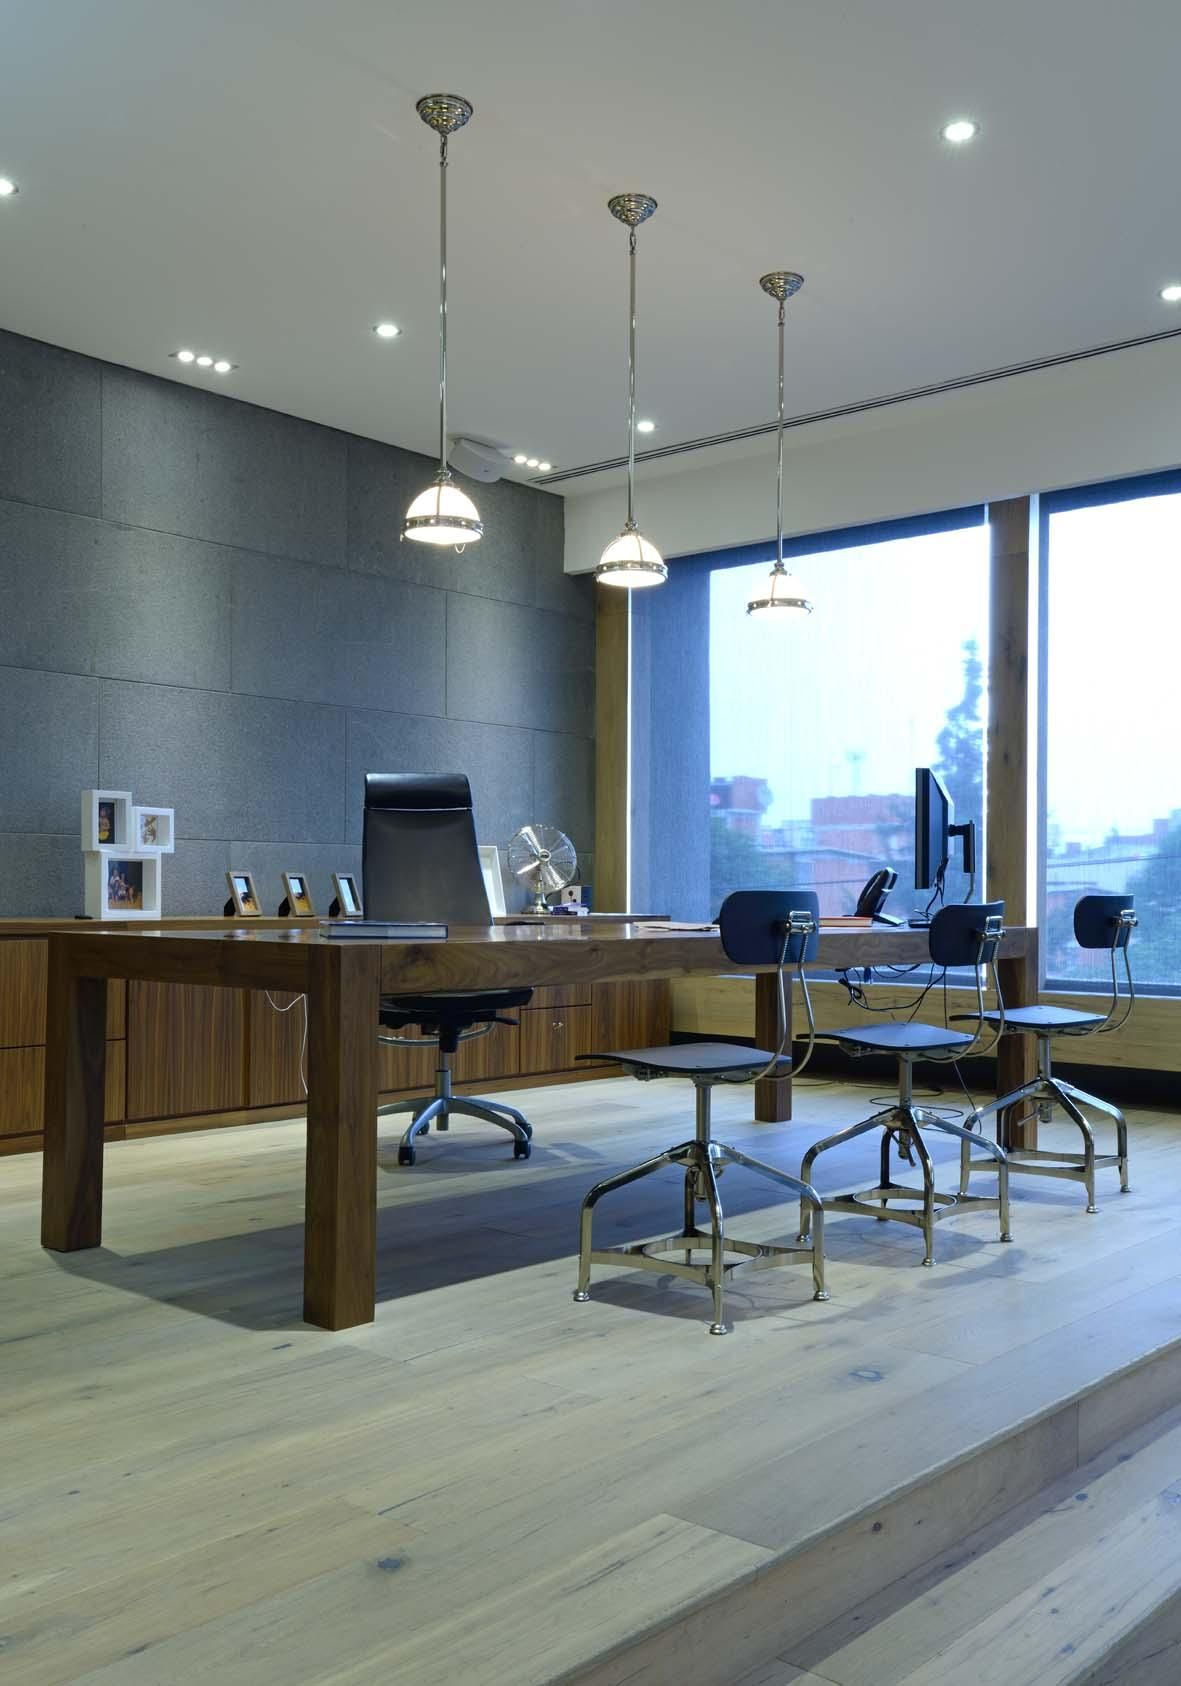 plan rustic office furniture. Tech Company Headquarters In Mexico City | Industrial Office Furniture Modern Commercial Rustic Plan R